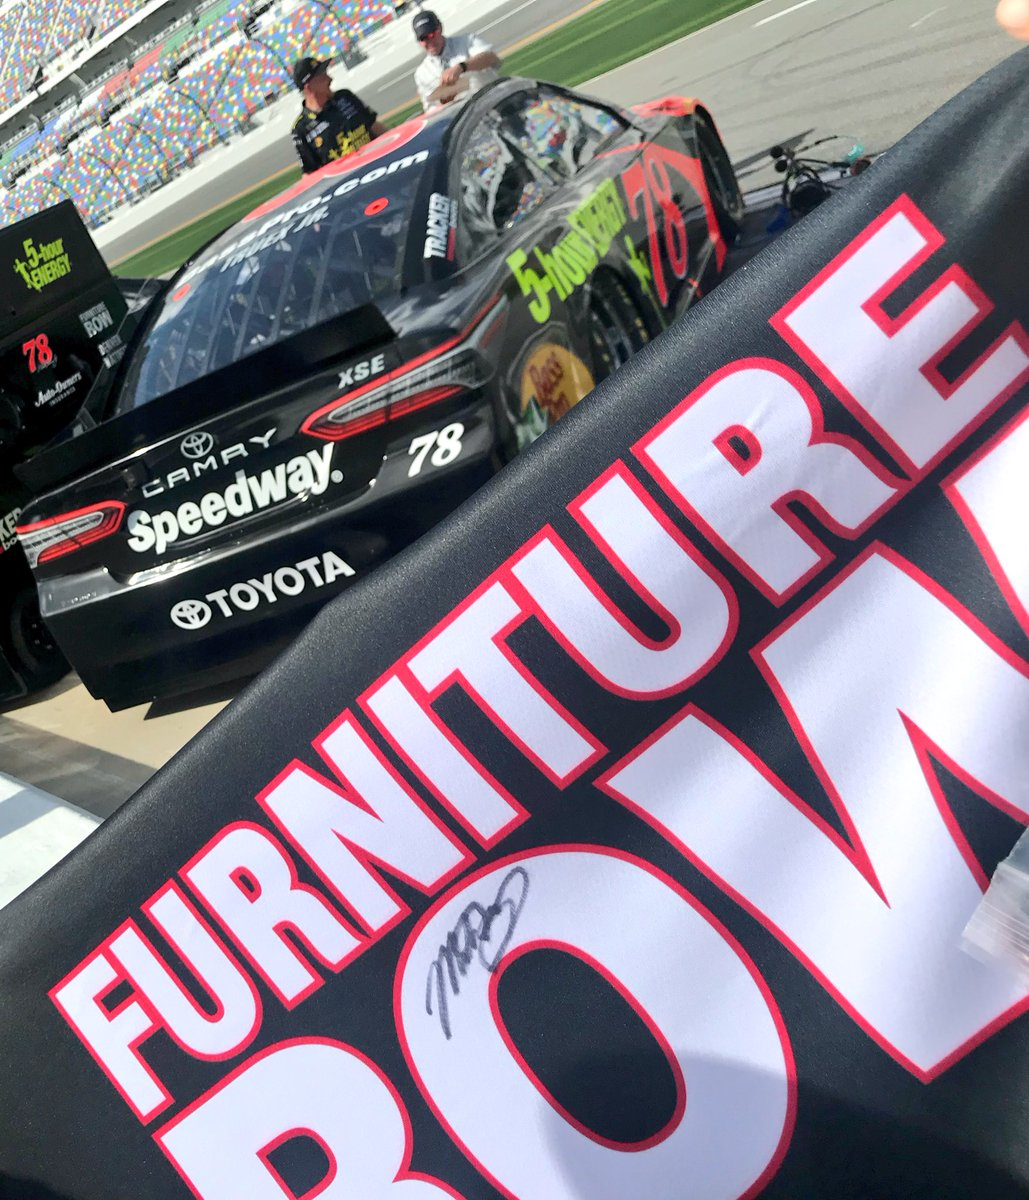 Are you ready for #DAYTONA500 Qualifying?! RETWEET for your chance to win this @FR78Racing crew shirt signed by ! @MartinTruex_Jr🏁  We'll pick a winner tomorrow at 11:00 am ET!